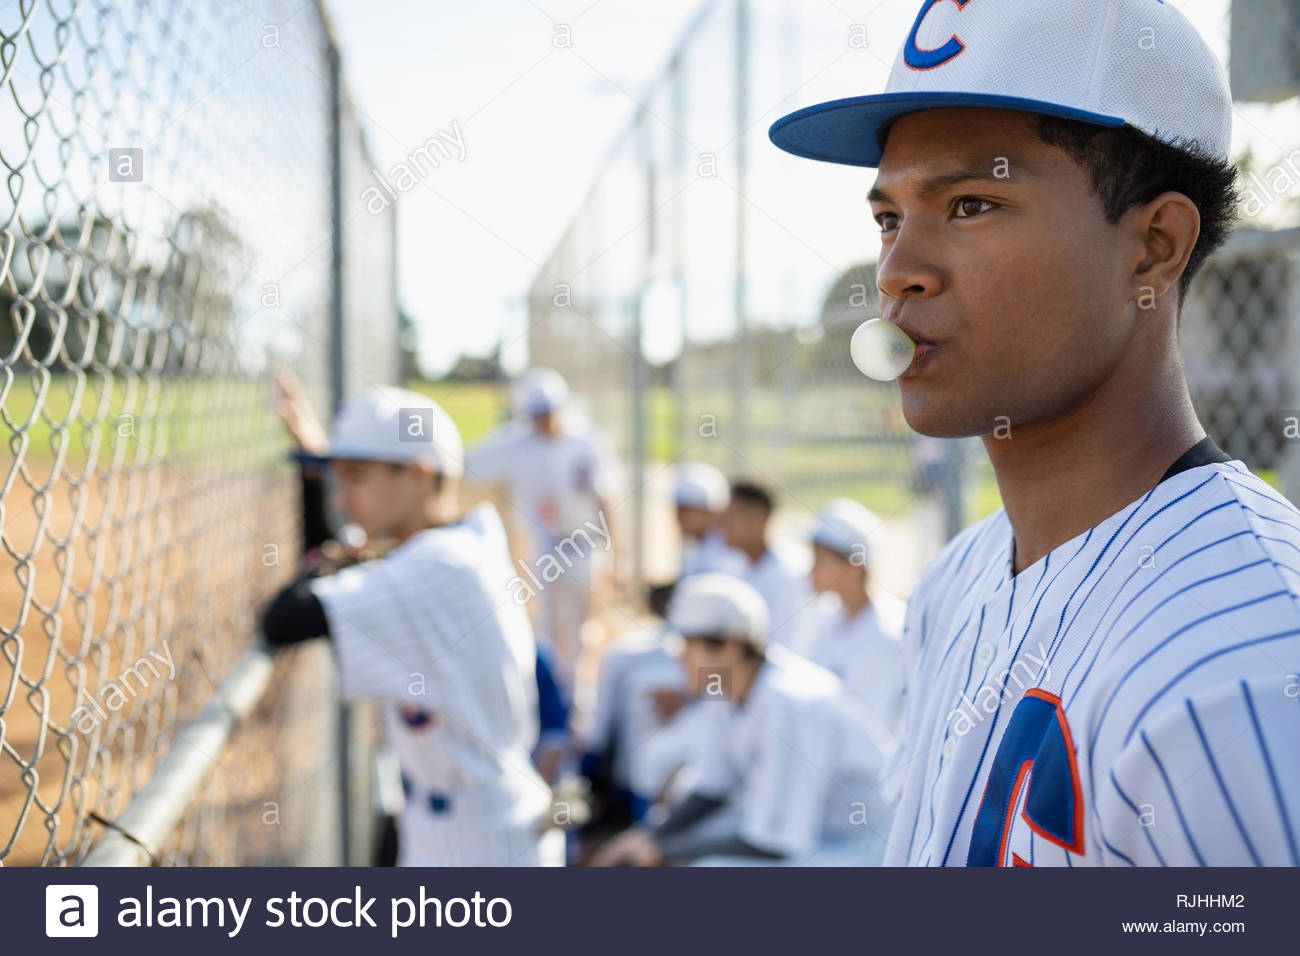 Baseball player blowing bubble gum bubble behind fence - Stock Image